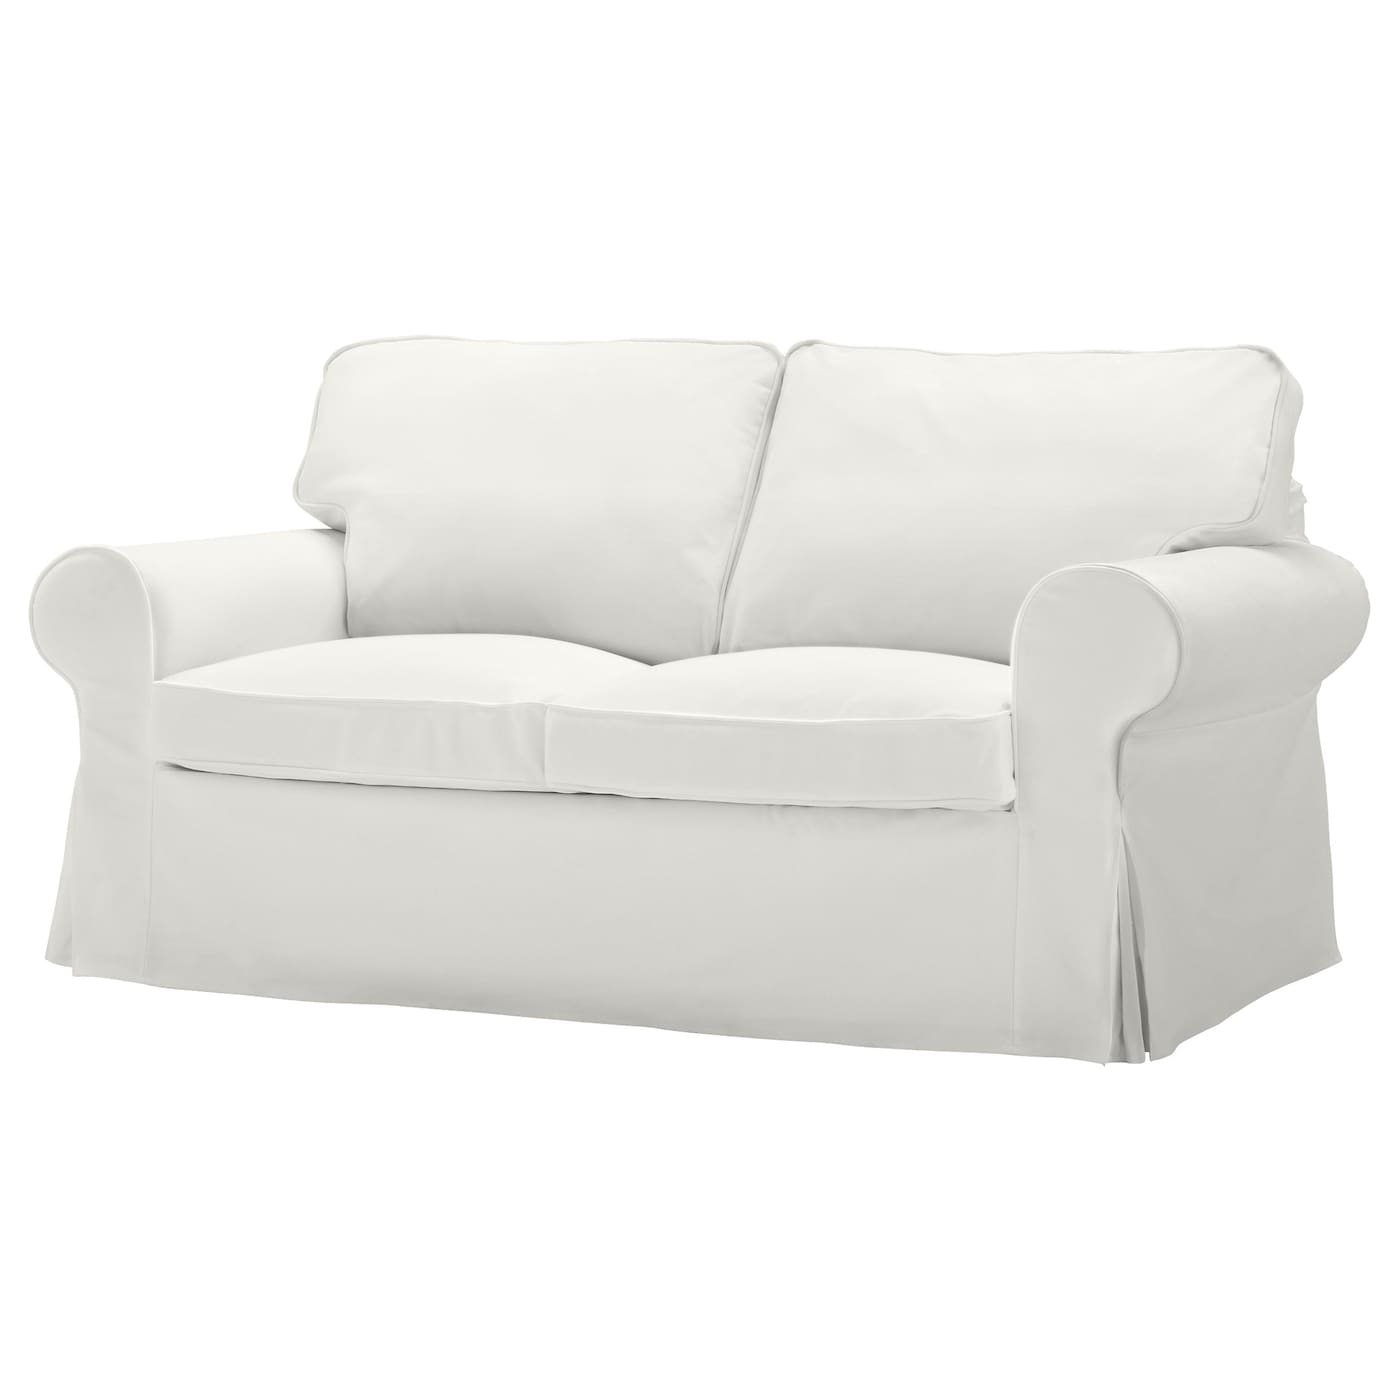 Ektorp two seat sofa blekinge white ikea for Ikea sofa set